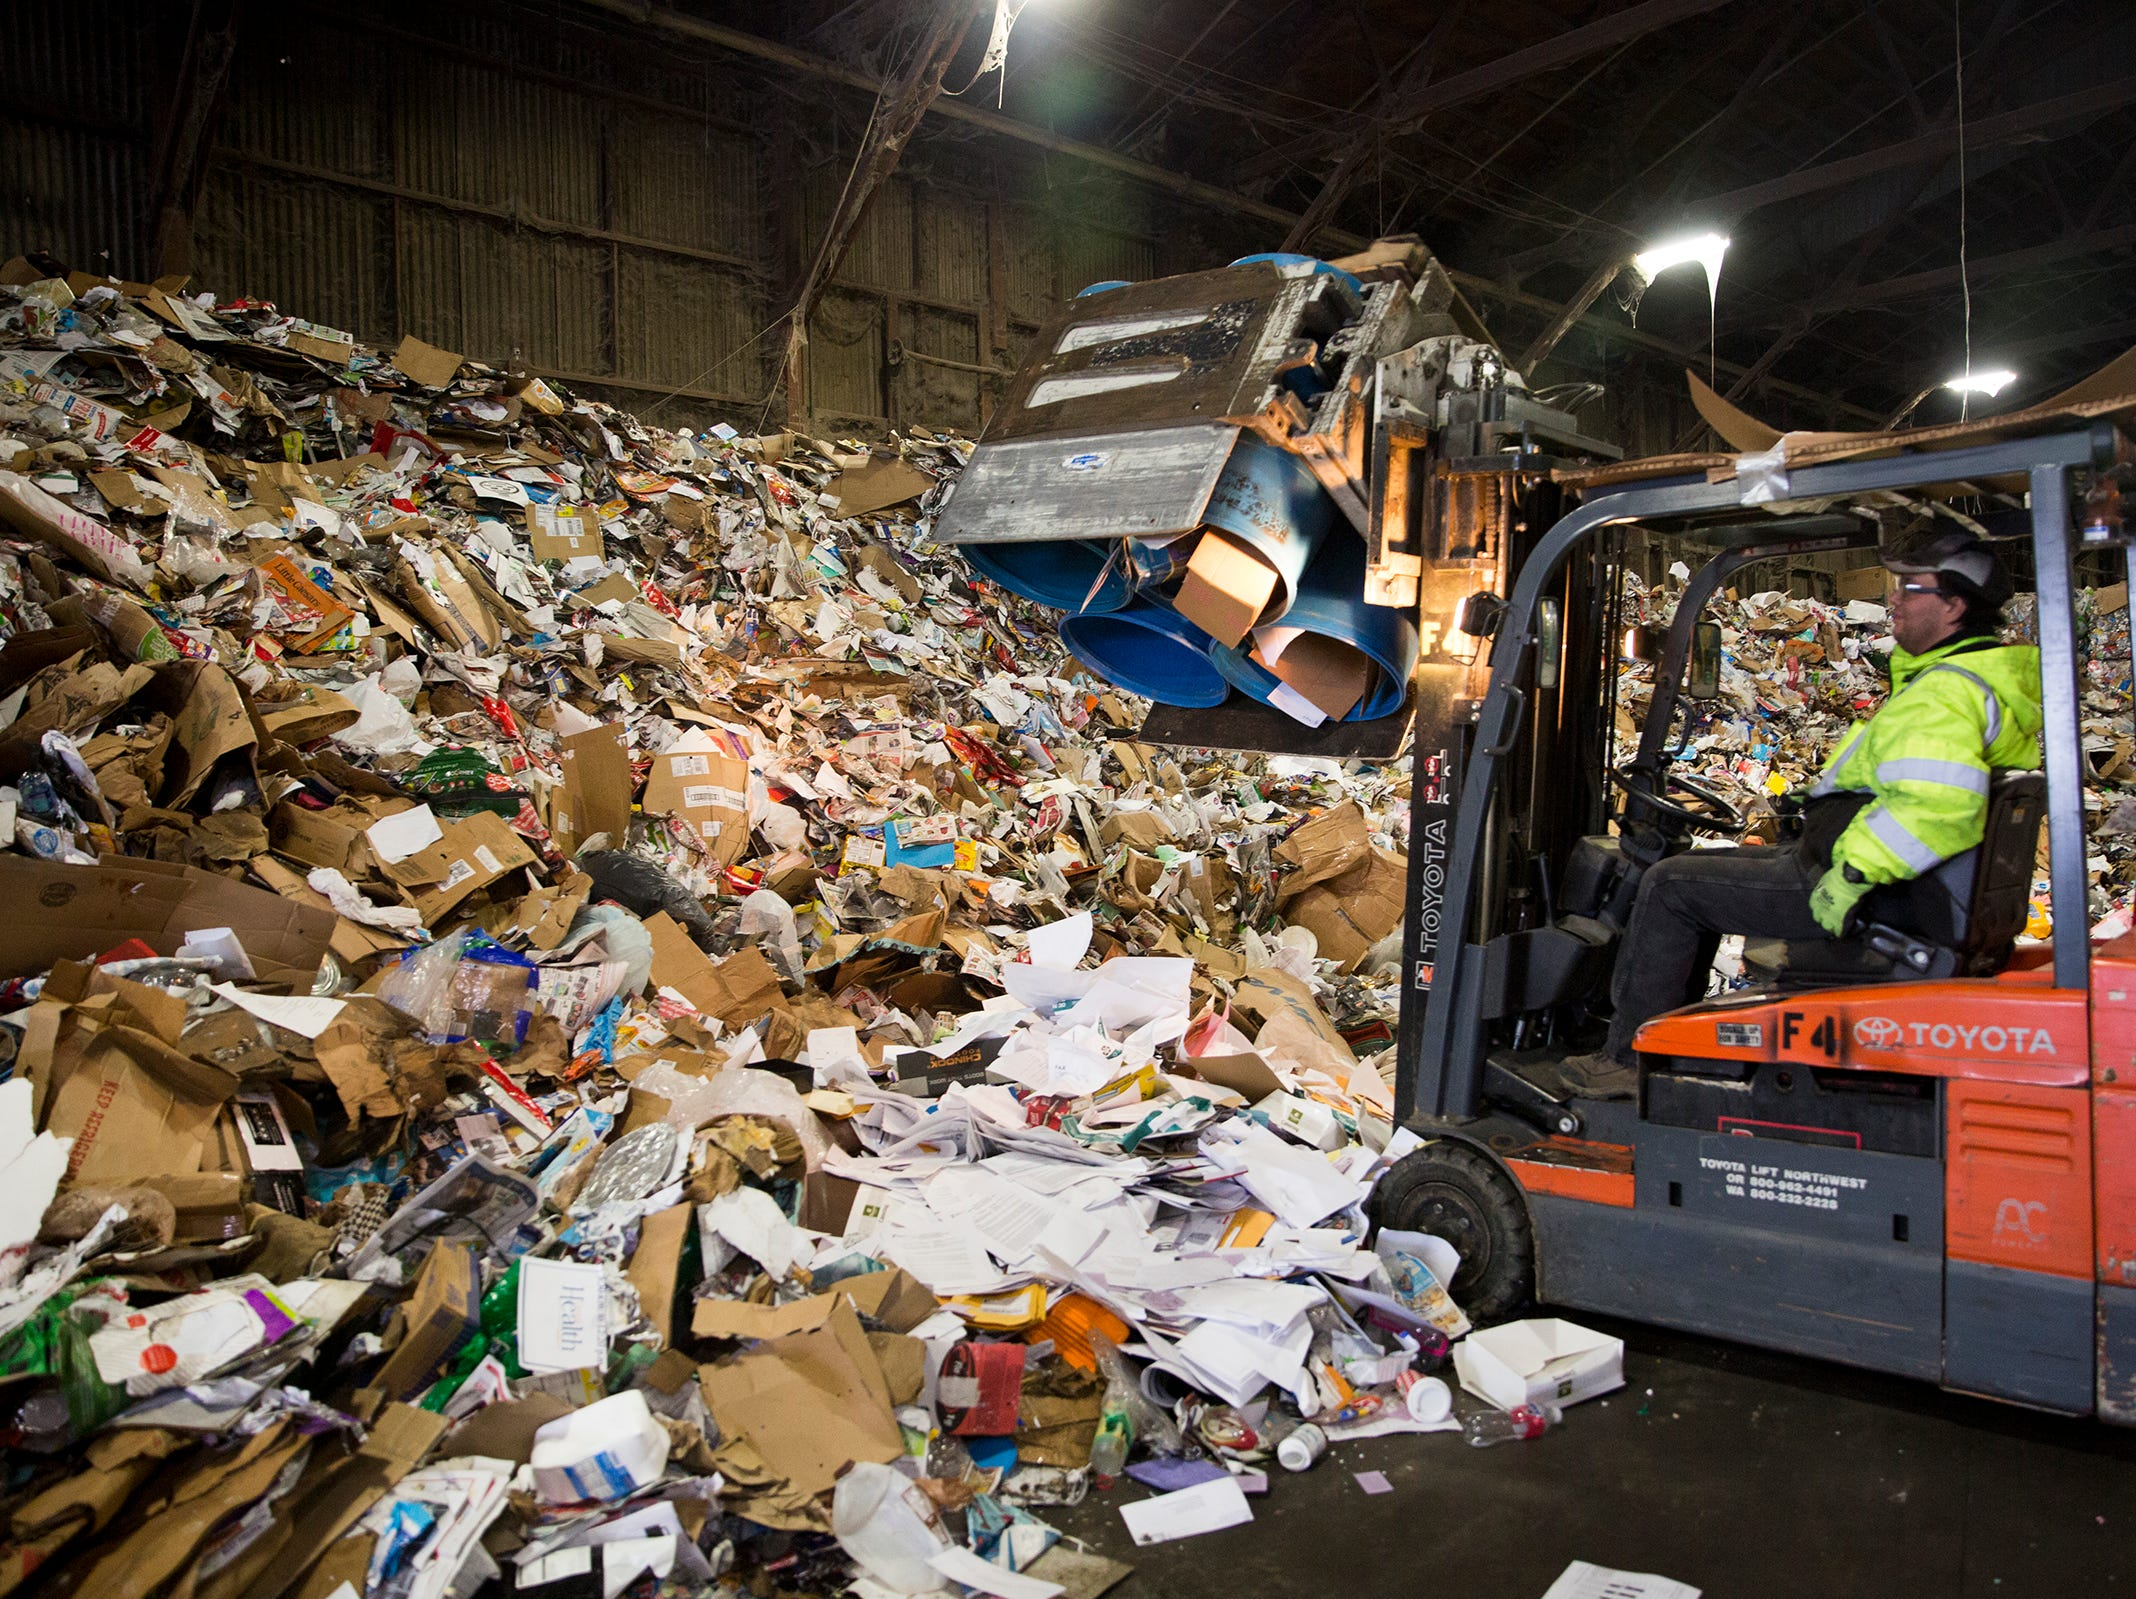 Garten Recycling employee Jody Ulricksen uses a forklift to pick up recycled items before they are sorted in Salem on Thursday, Dec. 20, 2018.